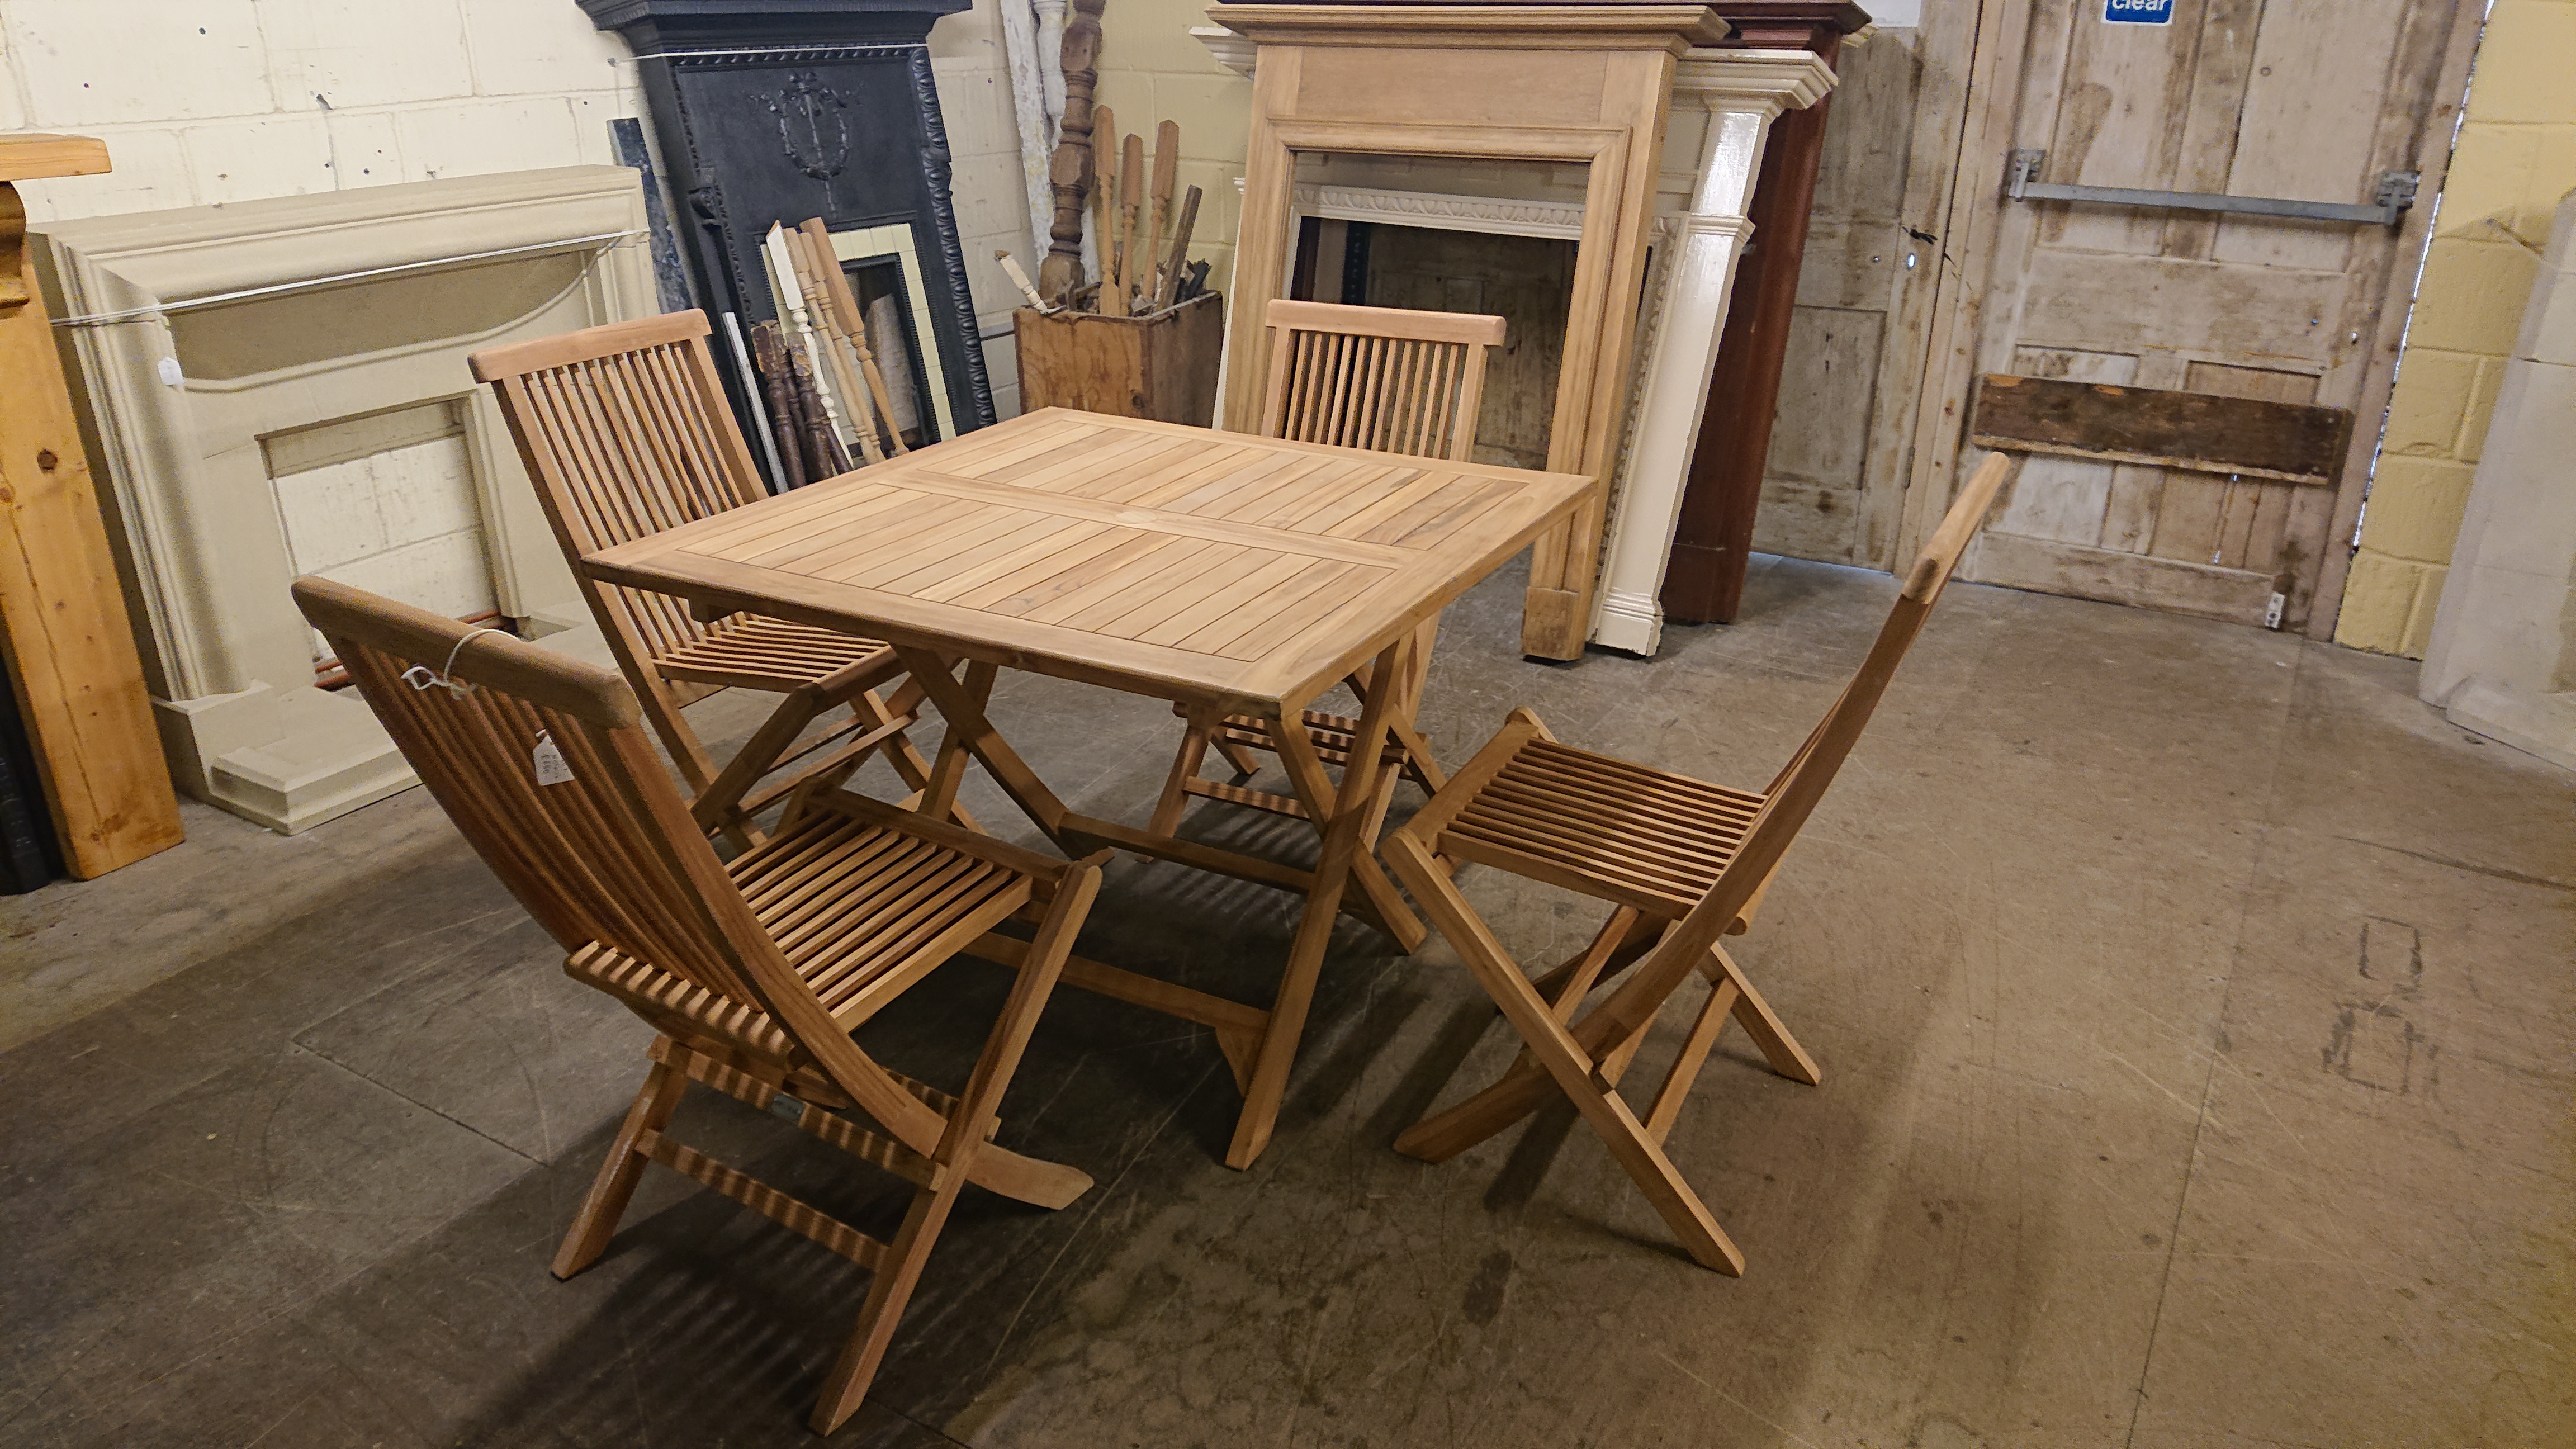 <p>Square Teak table and 4 chairs</p><p>Table and chairs fold up</p><p>Table 100 cm x 100 cm</p>